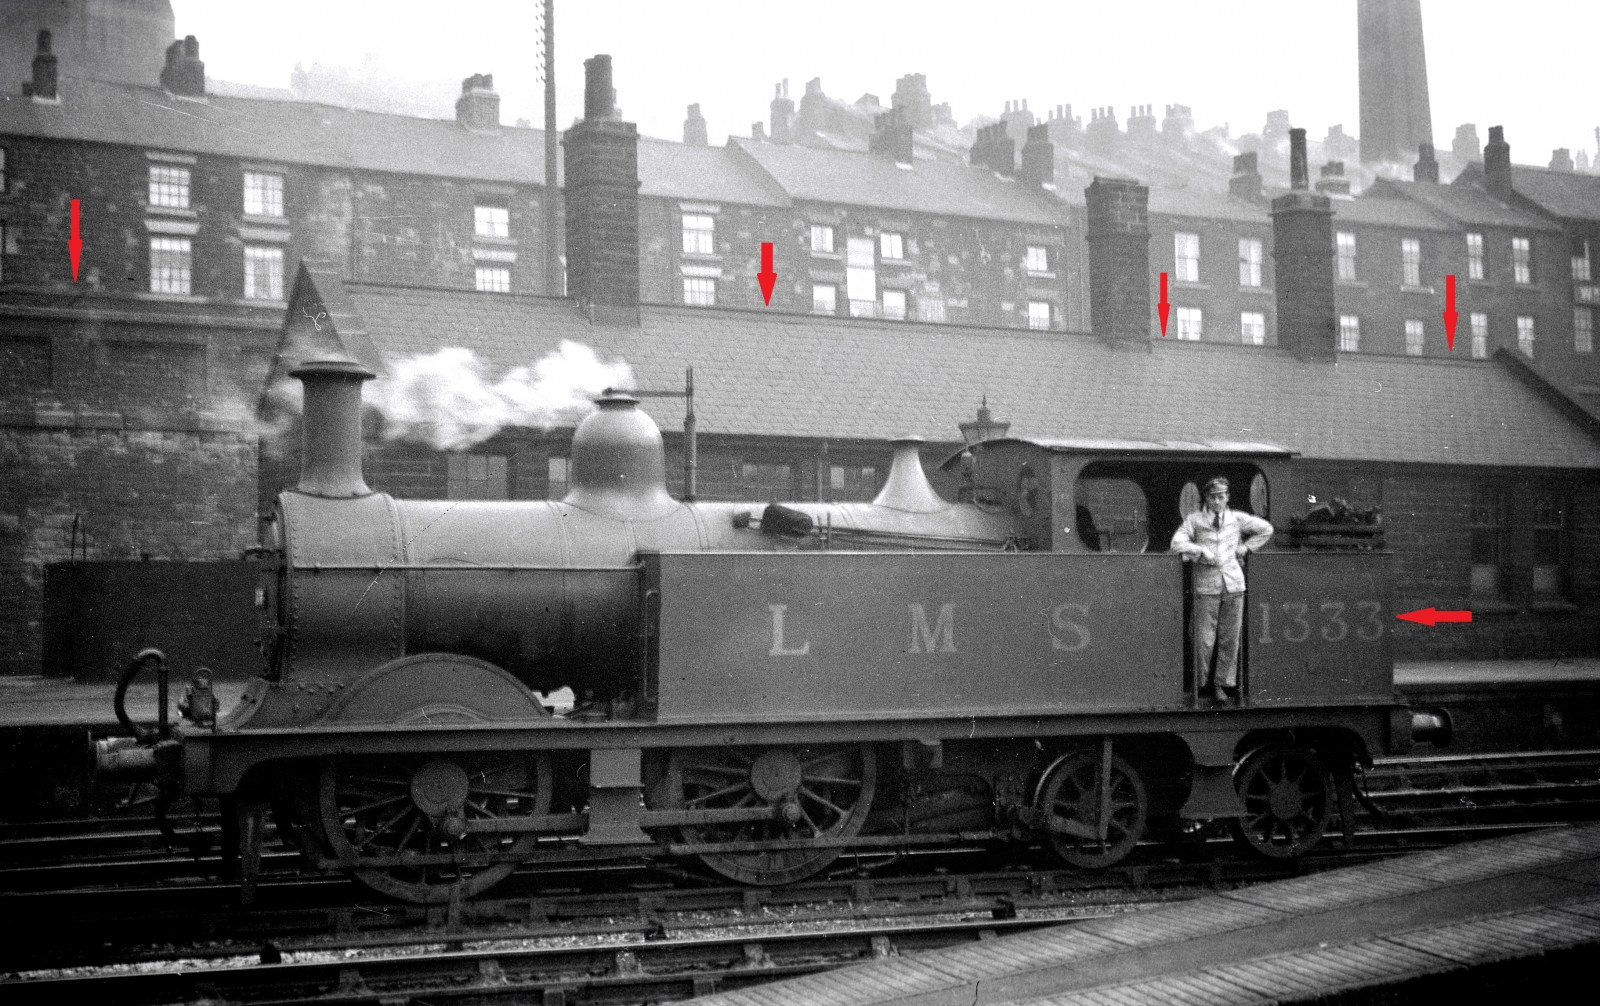 CAIMF308-Johnson Class 1P-D, No.1333-(30-06-1886 to 31-12-1931) at Sheffield Midland-1931-Web Copy.jpg